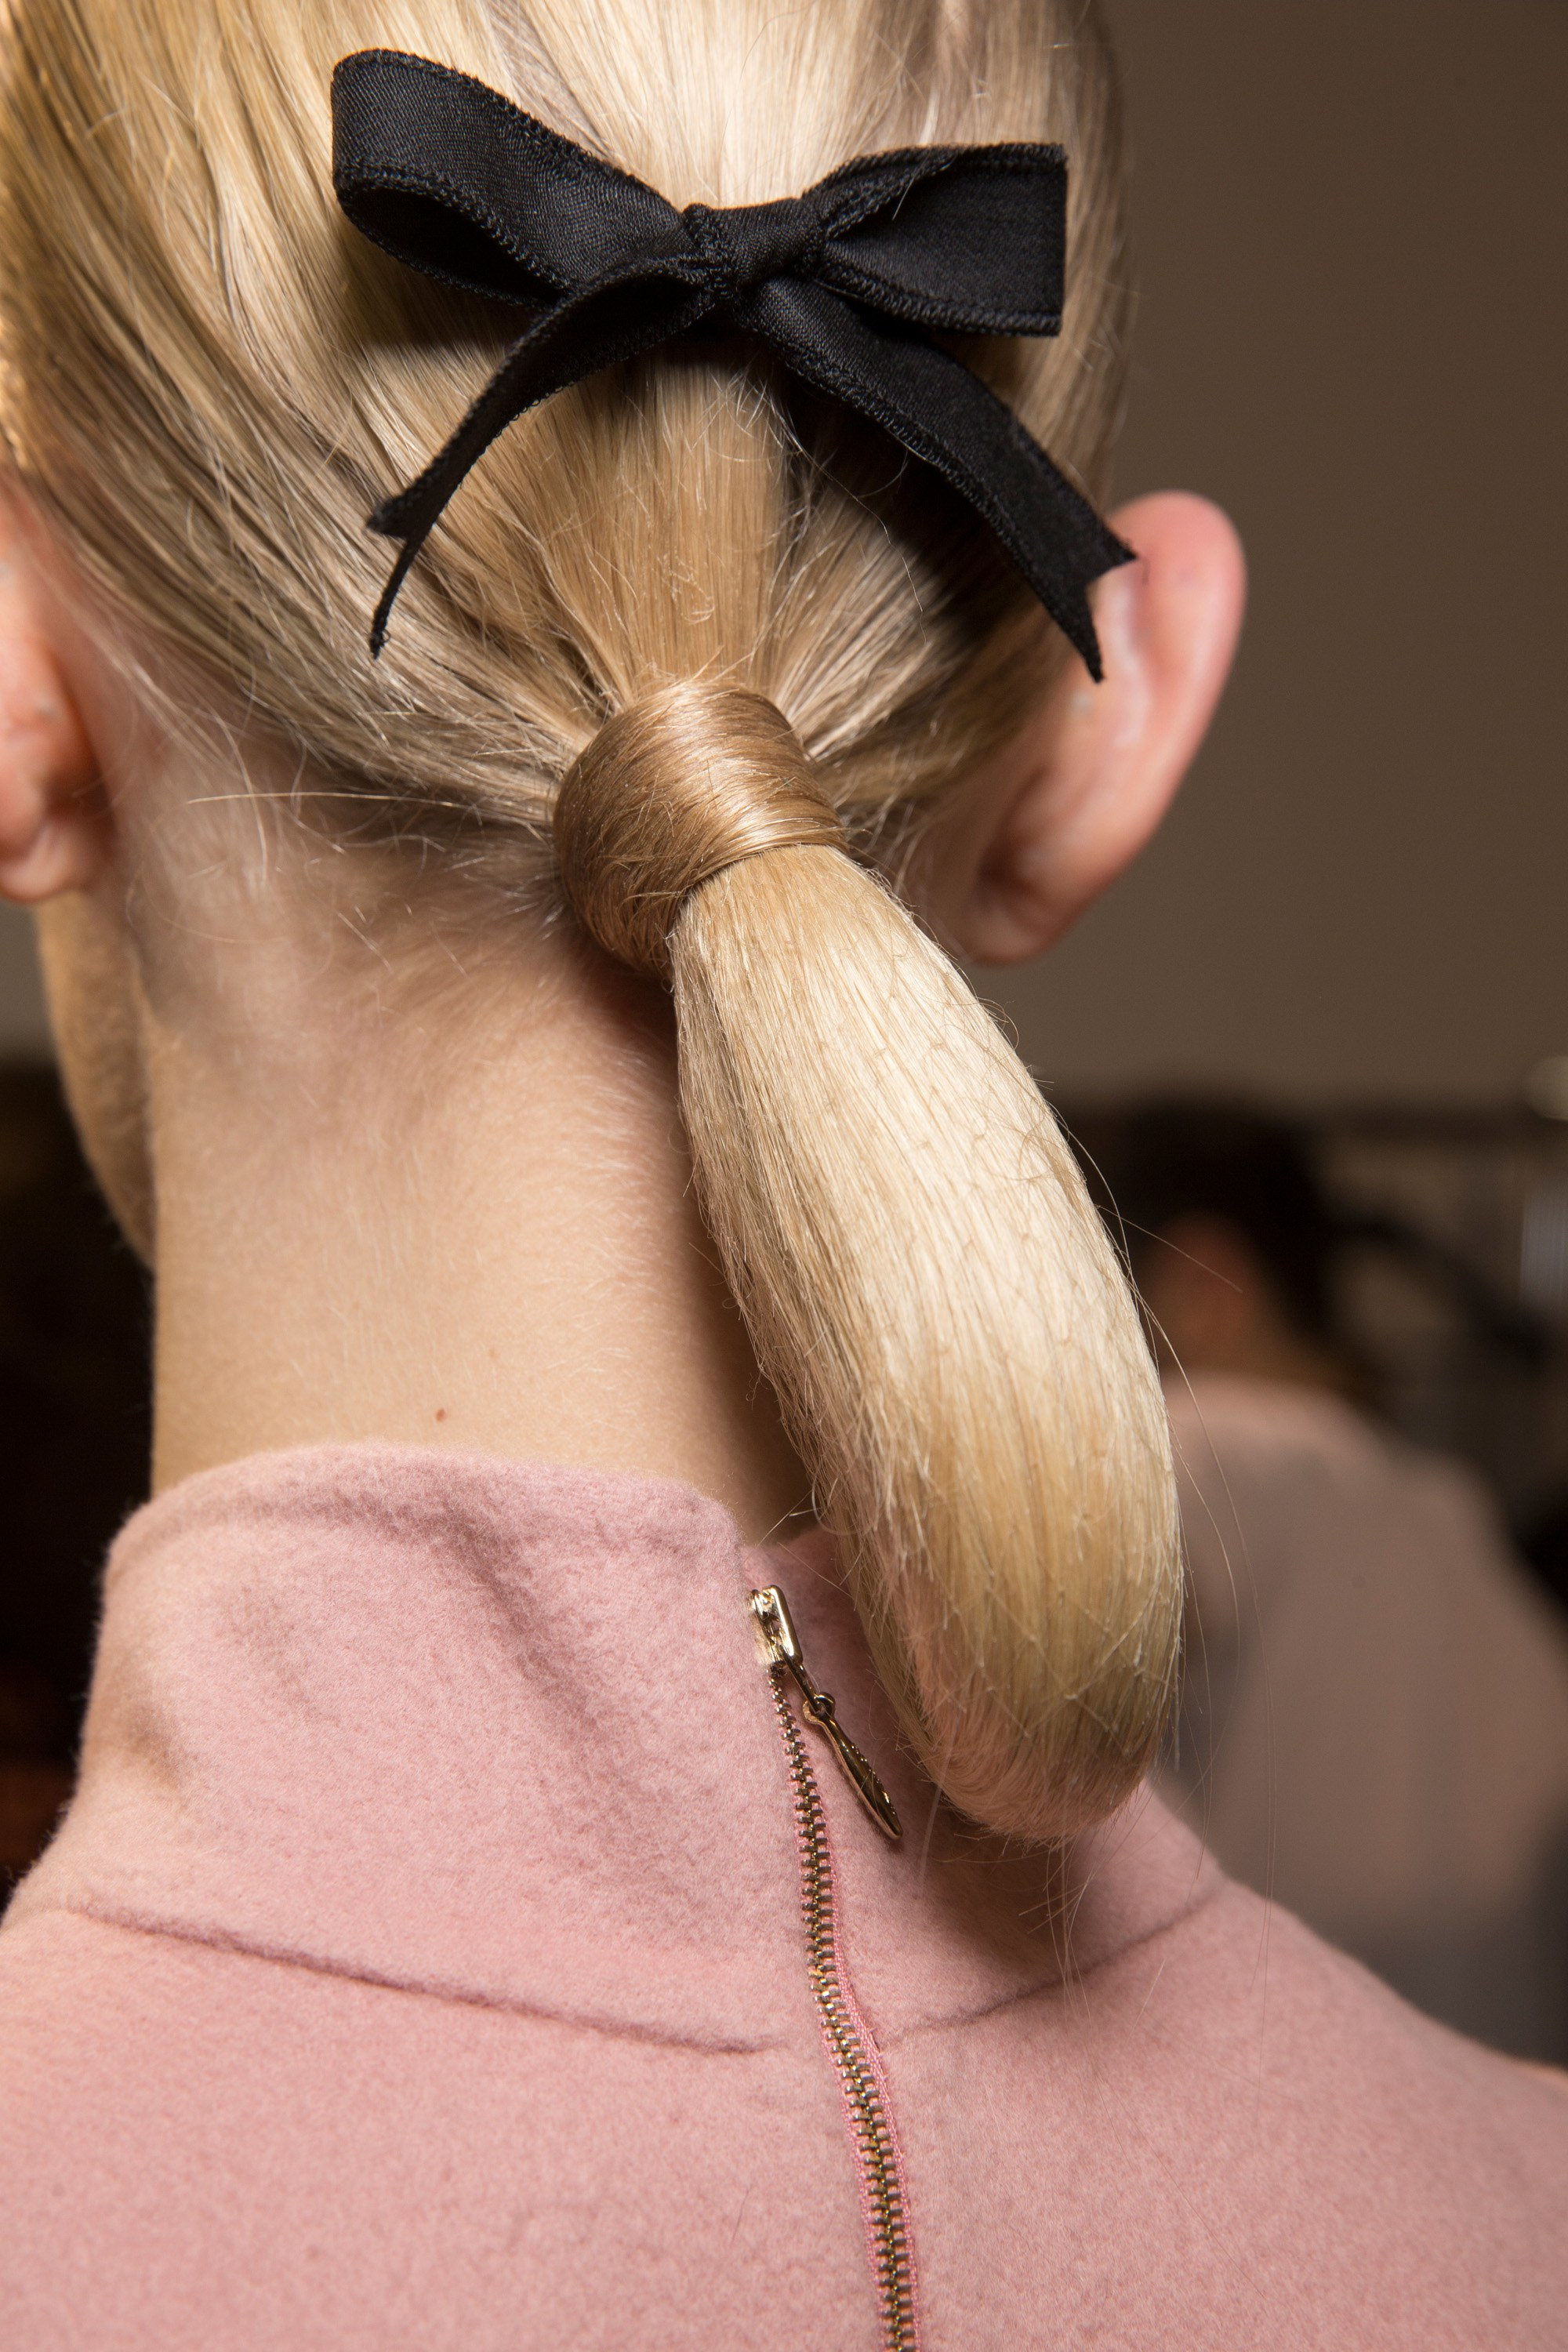 Most Recently Released Black Bow Ponytail Hairstyles Intended For Salon Collage – Hair And Beauty Salon (View 11 of 20)